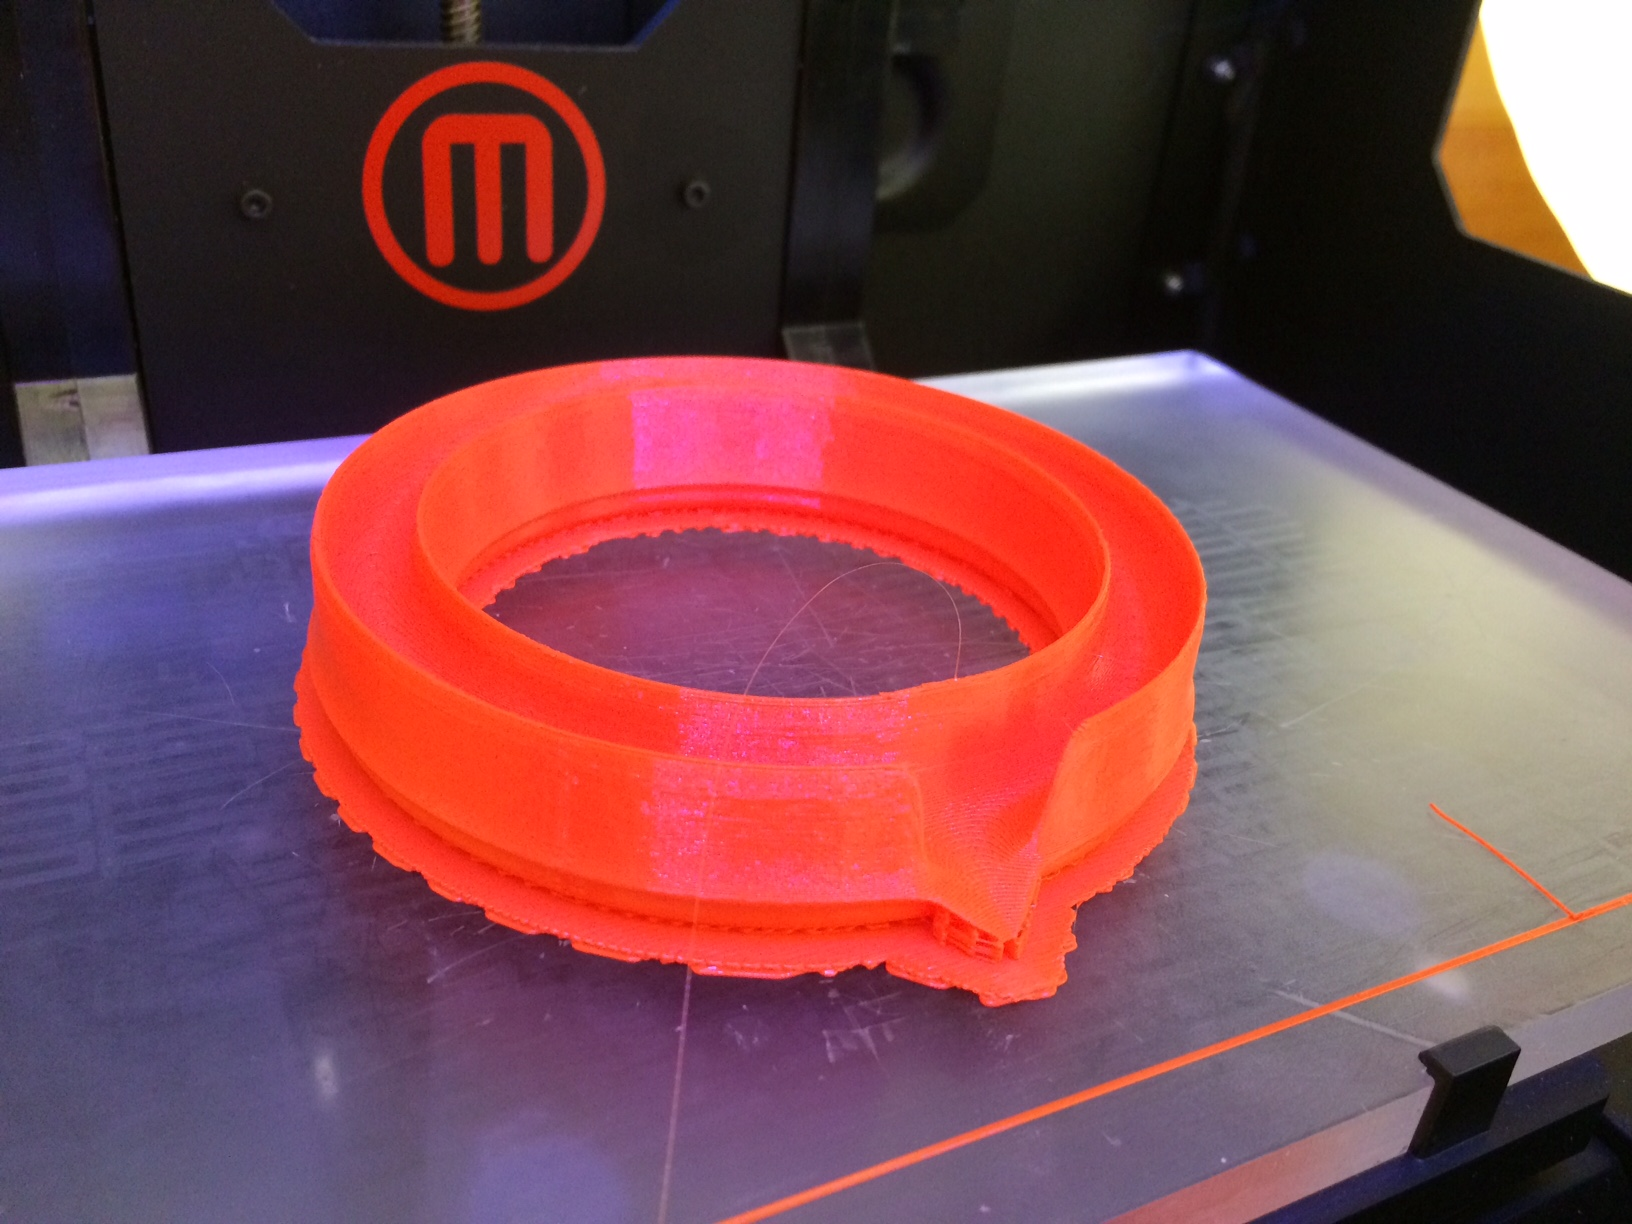 3d printed rind prototype from BGHS student.